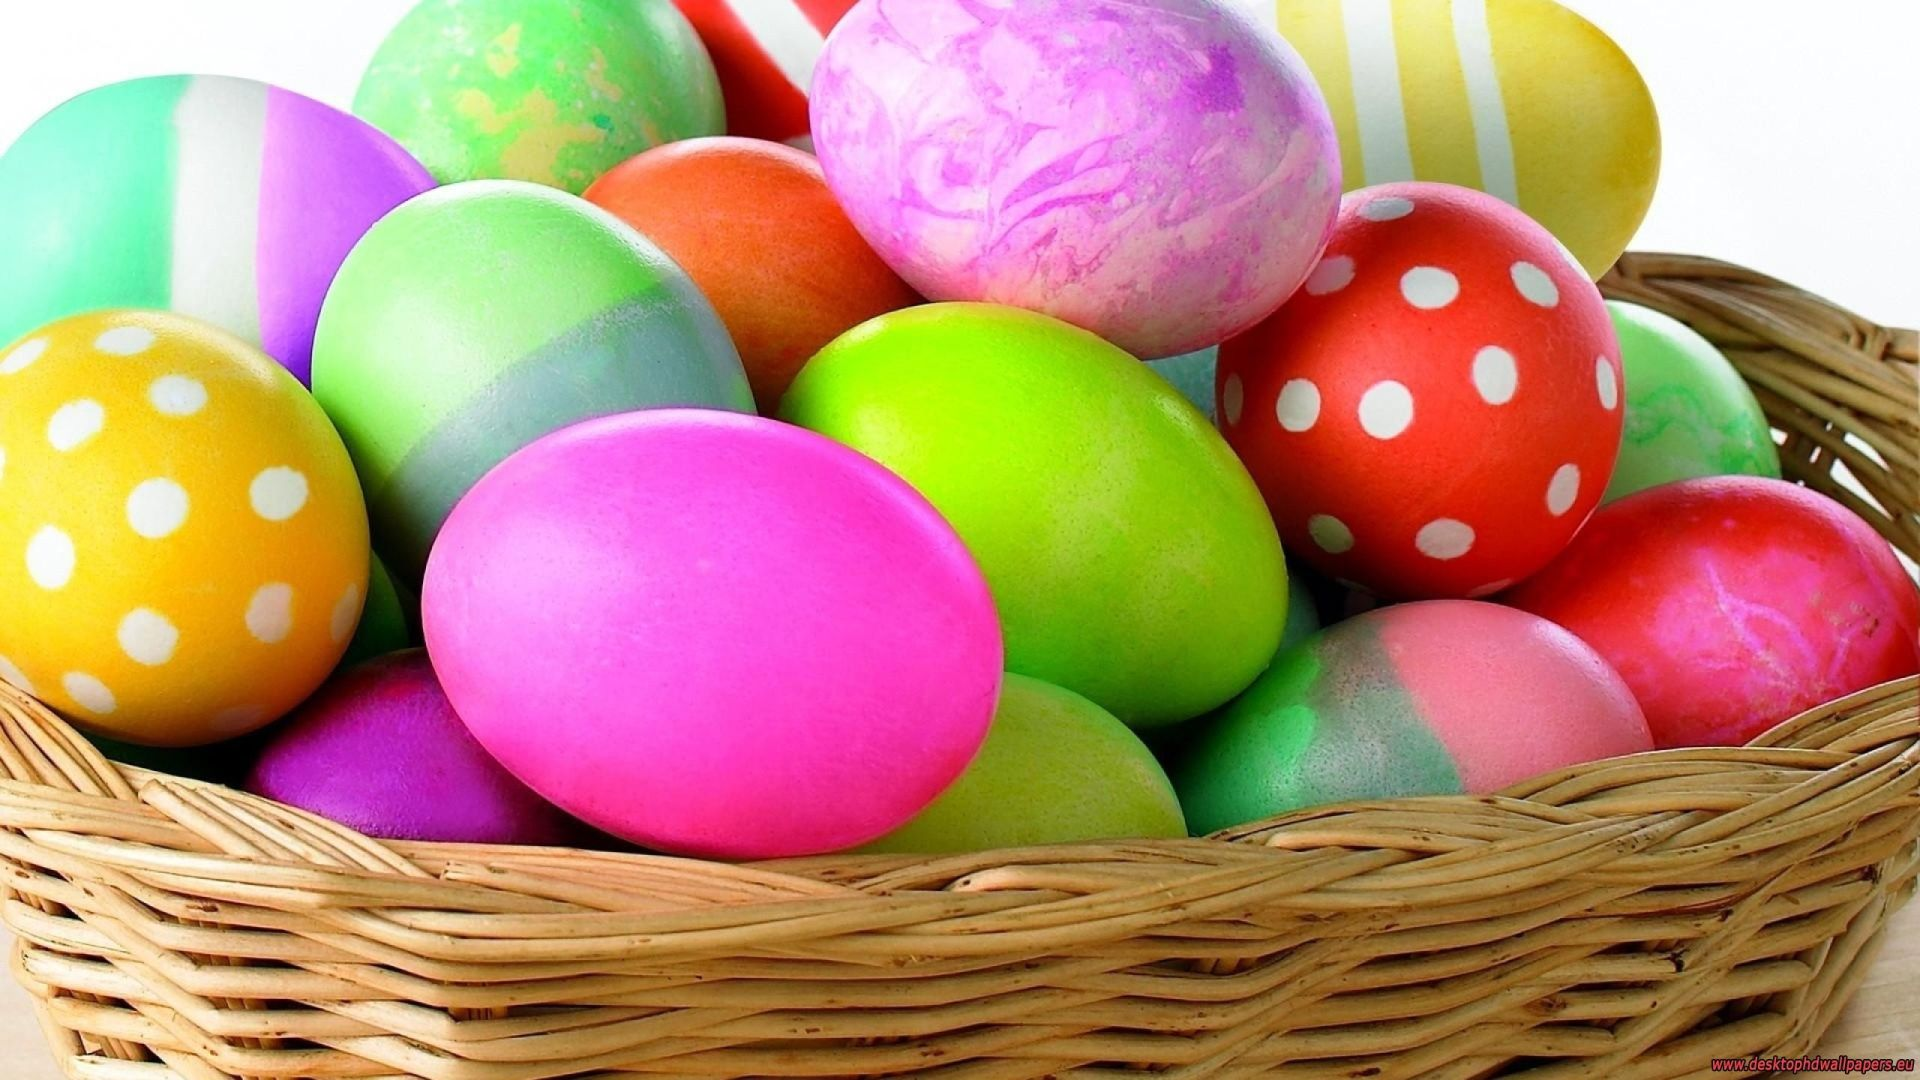 Hd wallpaper easter eggs